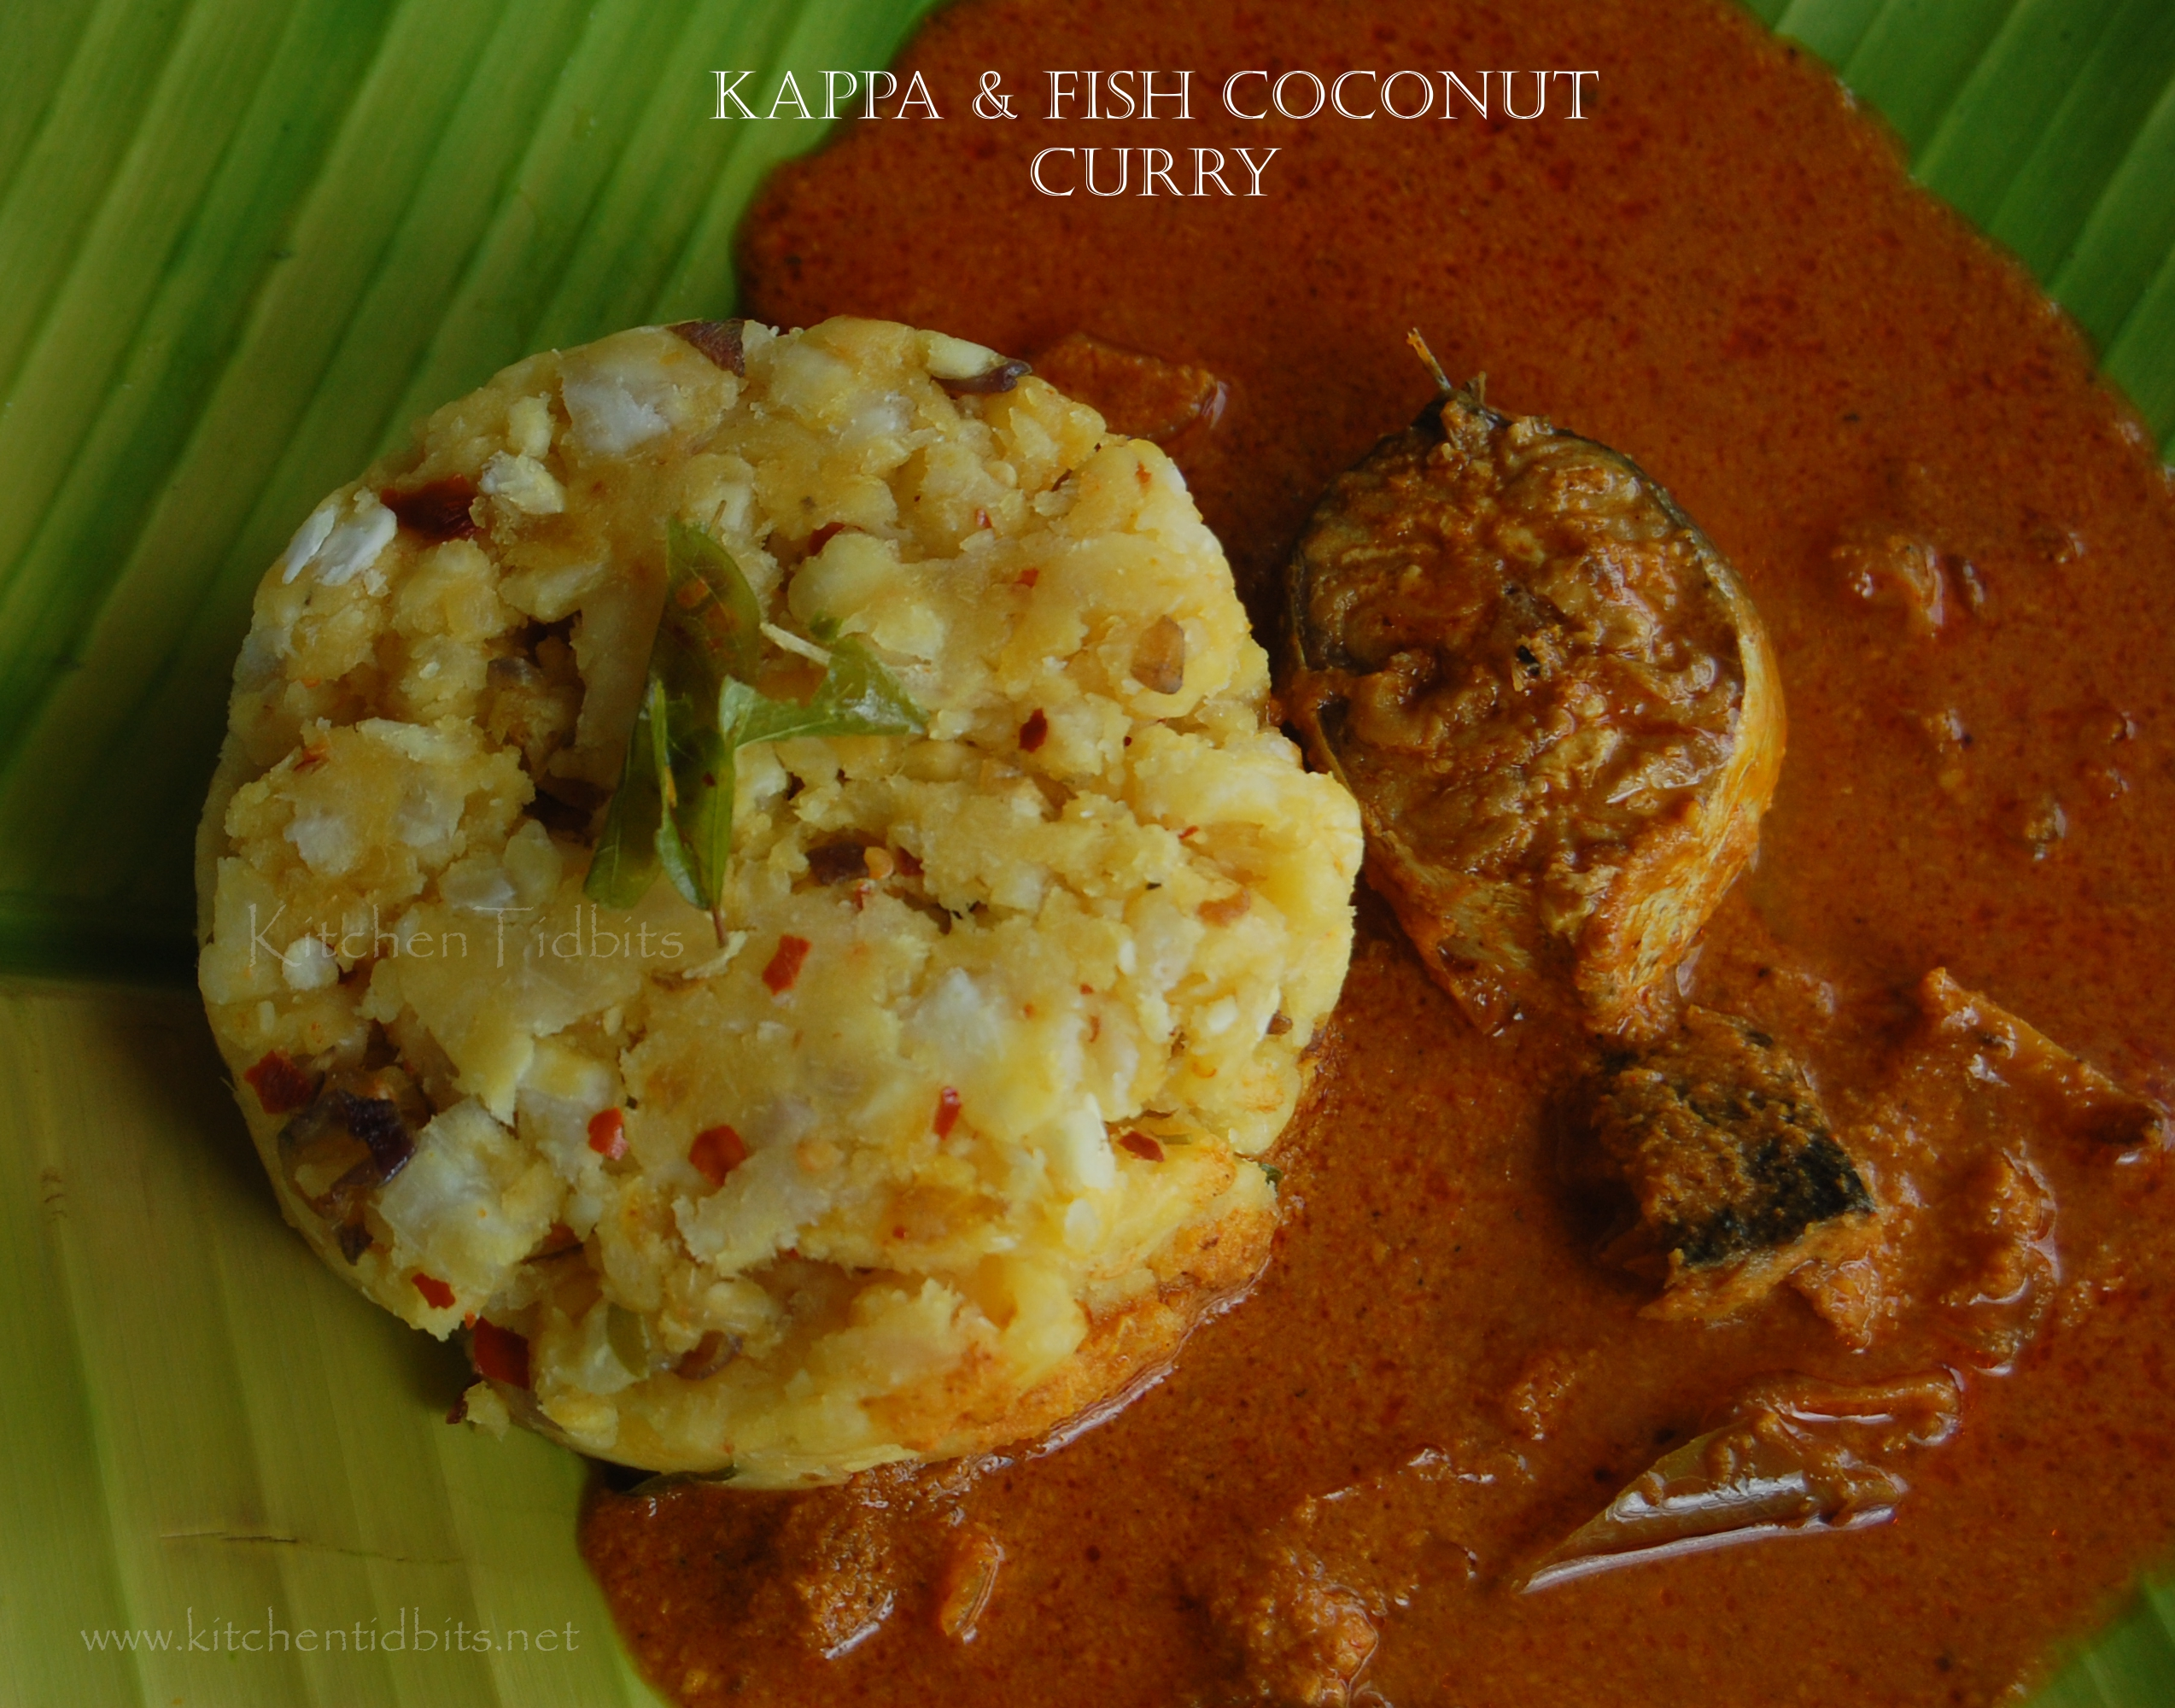 Kappa -Meen Curry/ Tapioca- Fish Coconut Curry